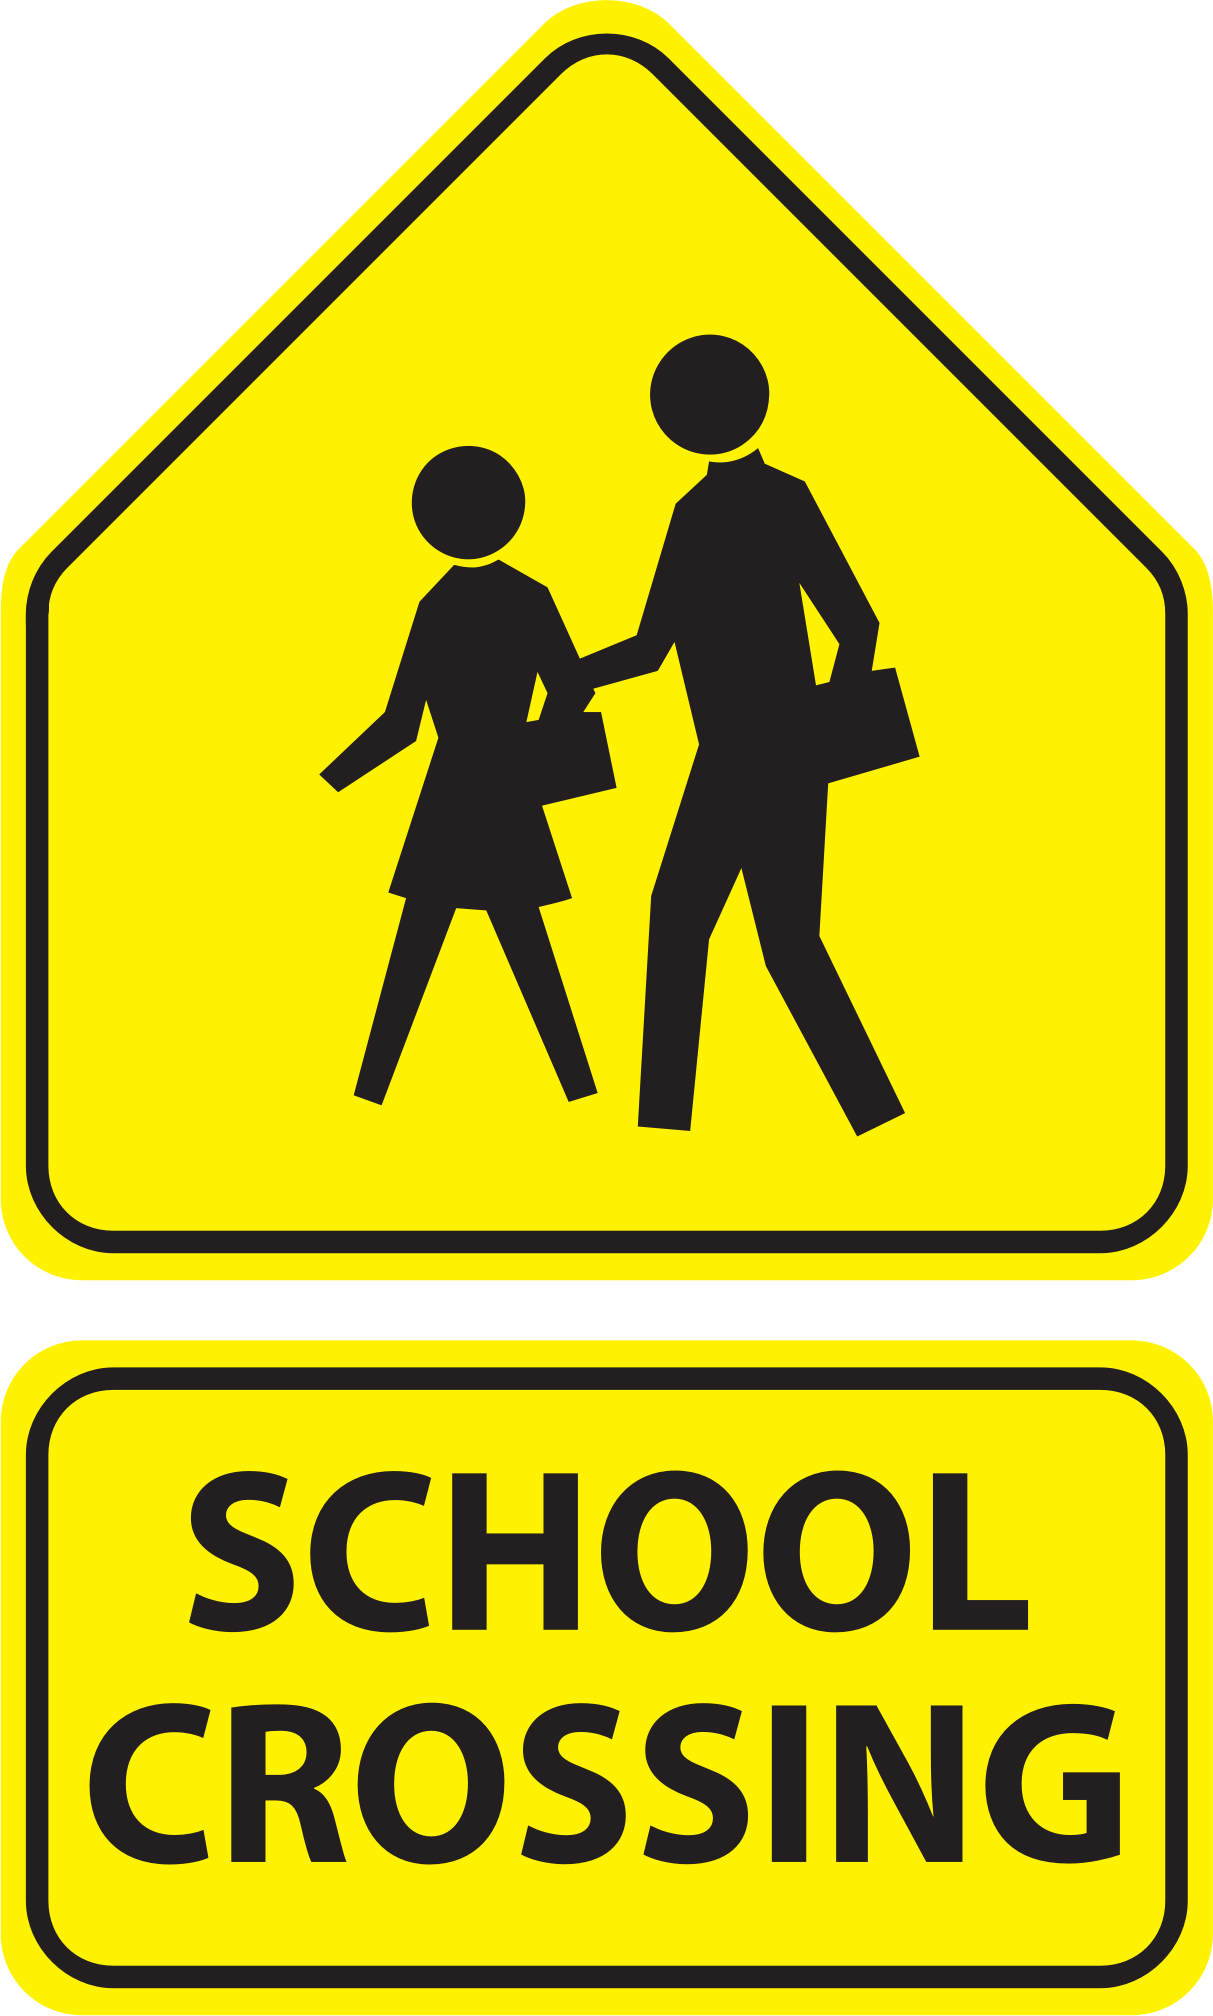 School sign clipart image free stock Clipart - School Crossing Signs image free stock